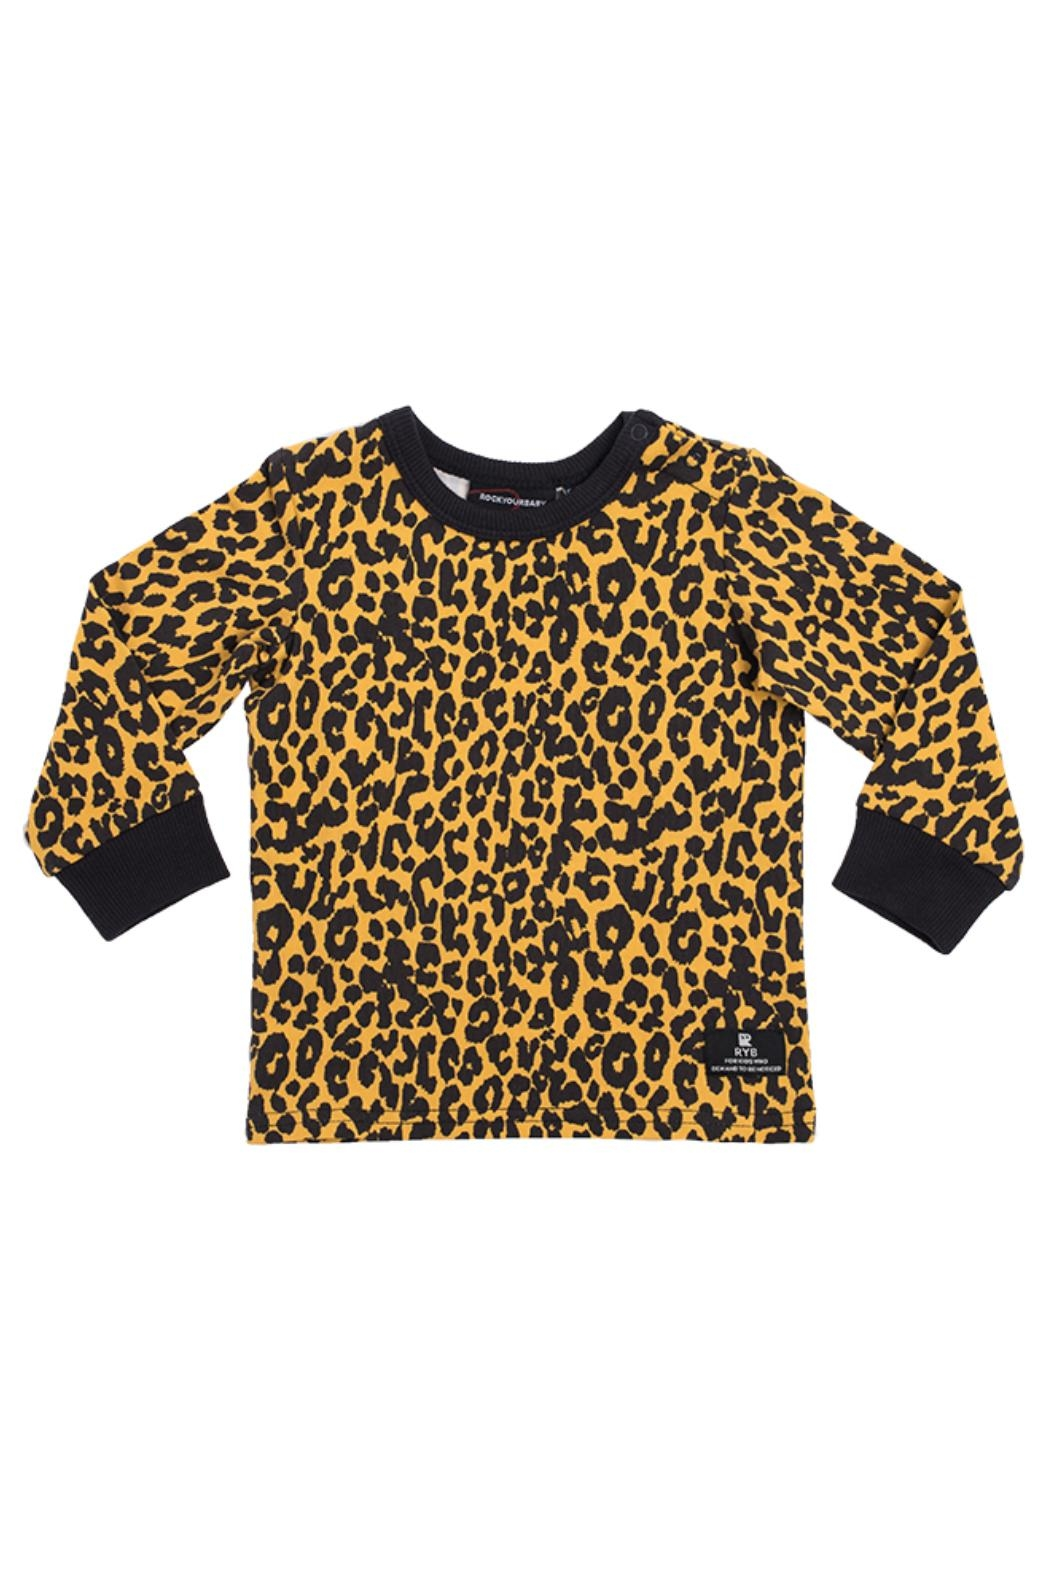 Rock Your Baby Leopard Print Top - Main Image